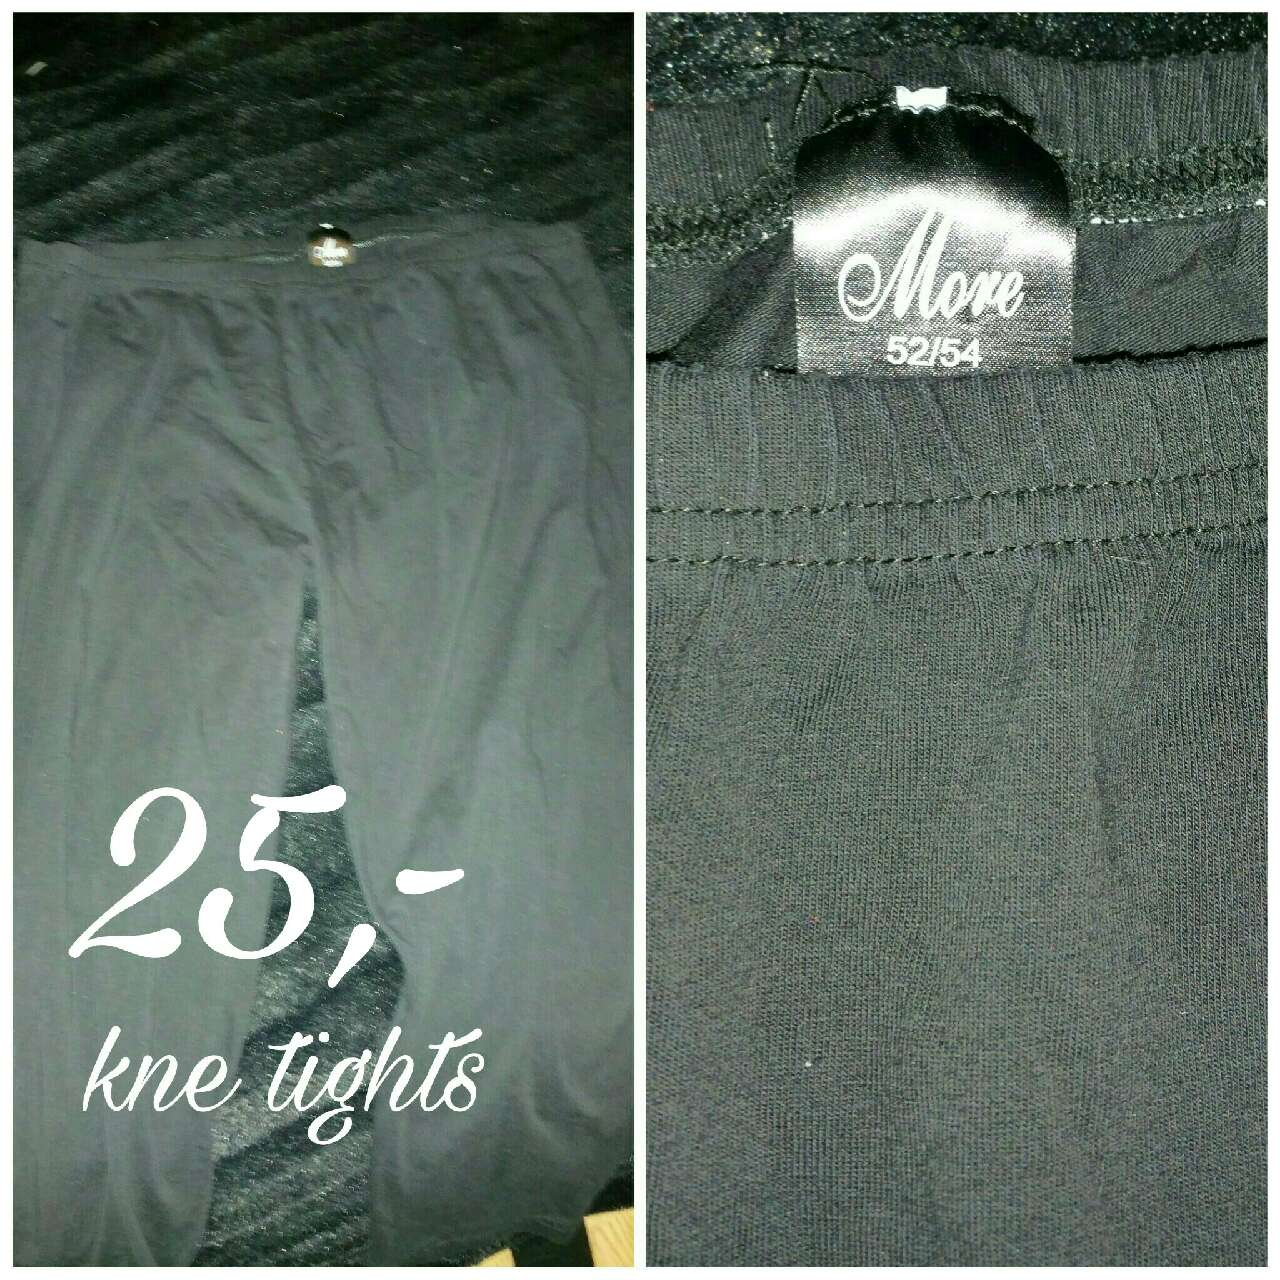 kne tights 25,- aldri brukt